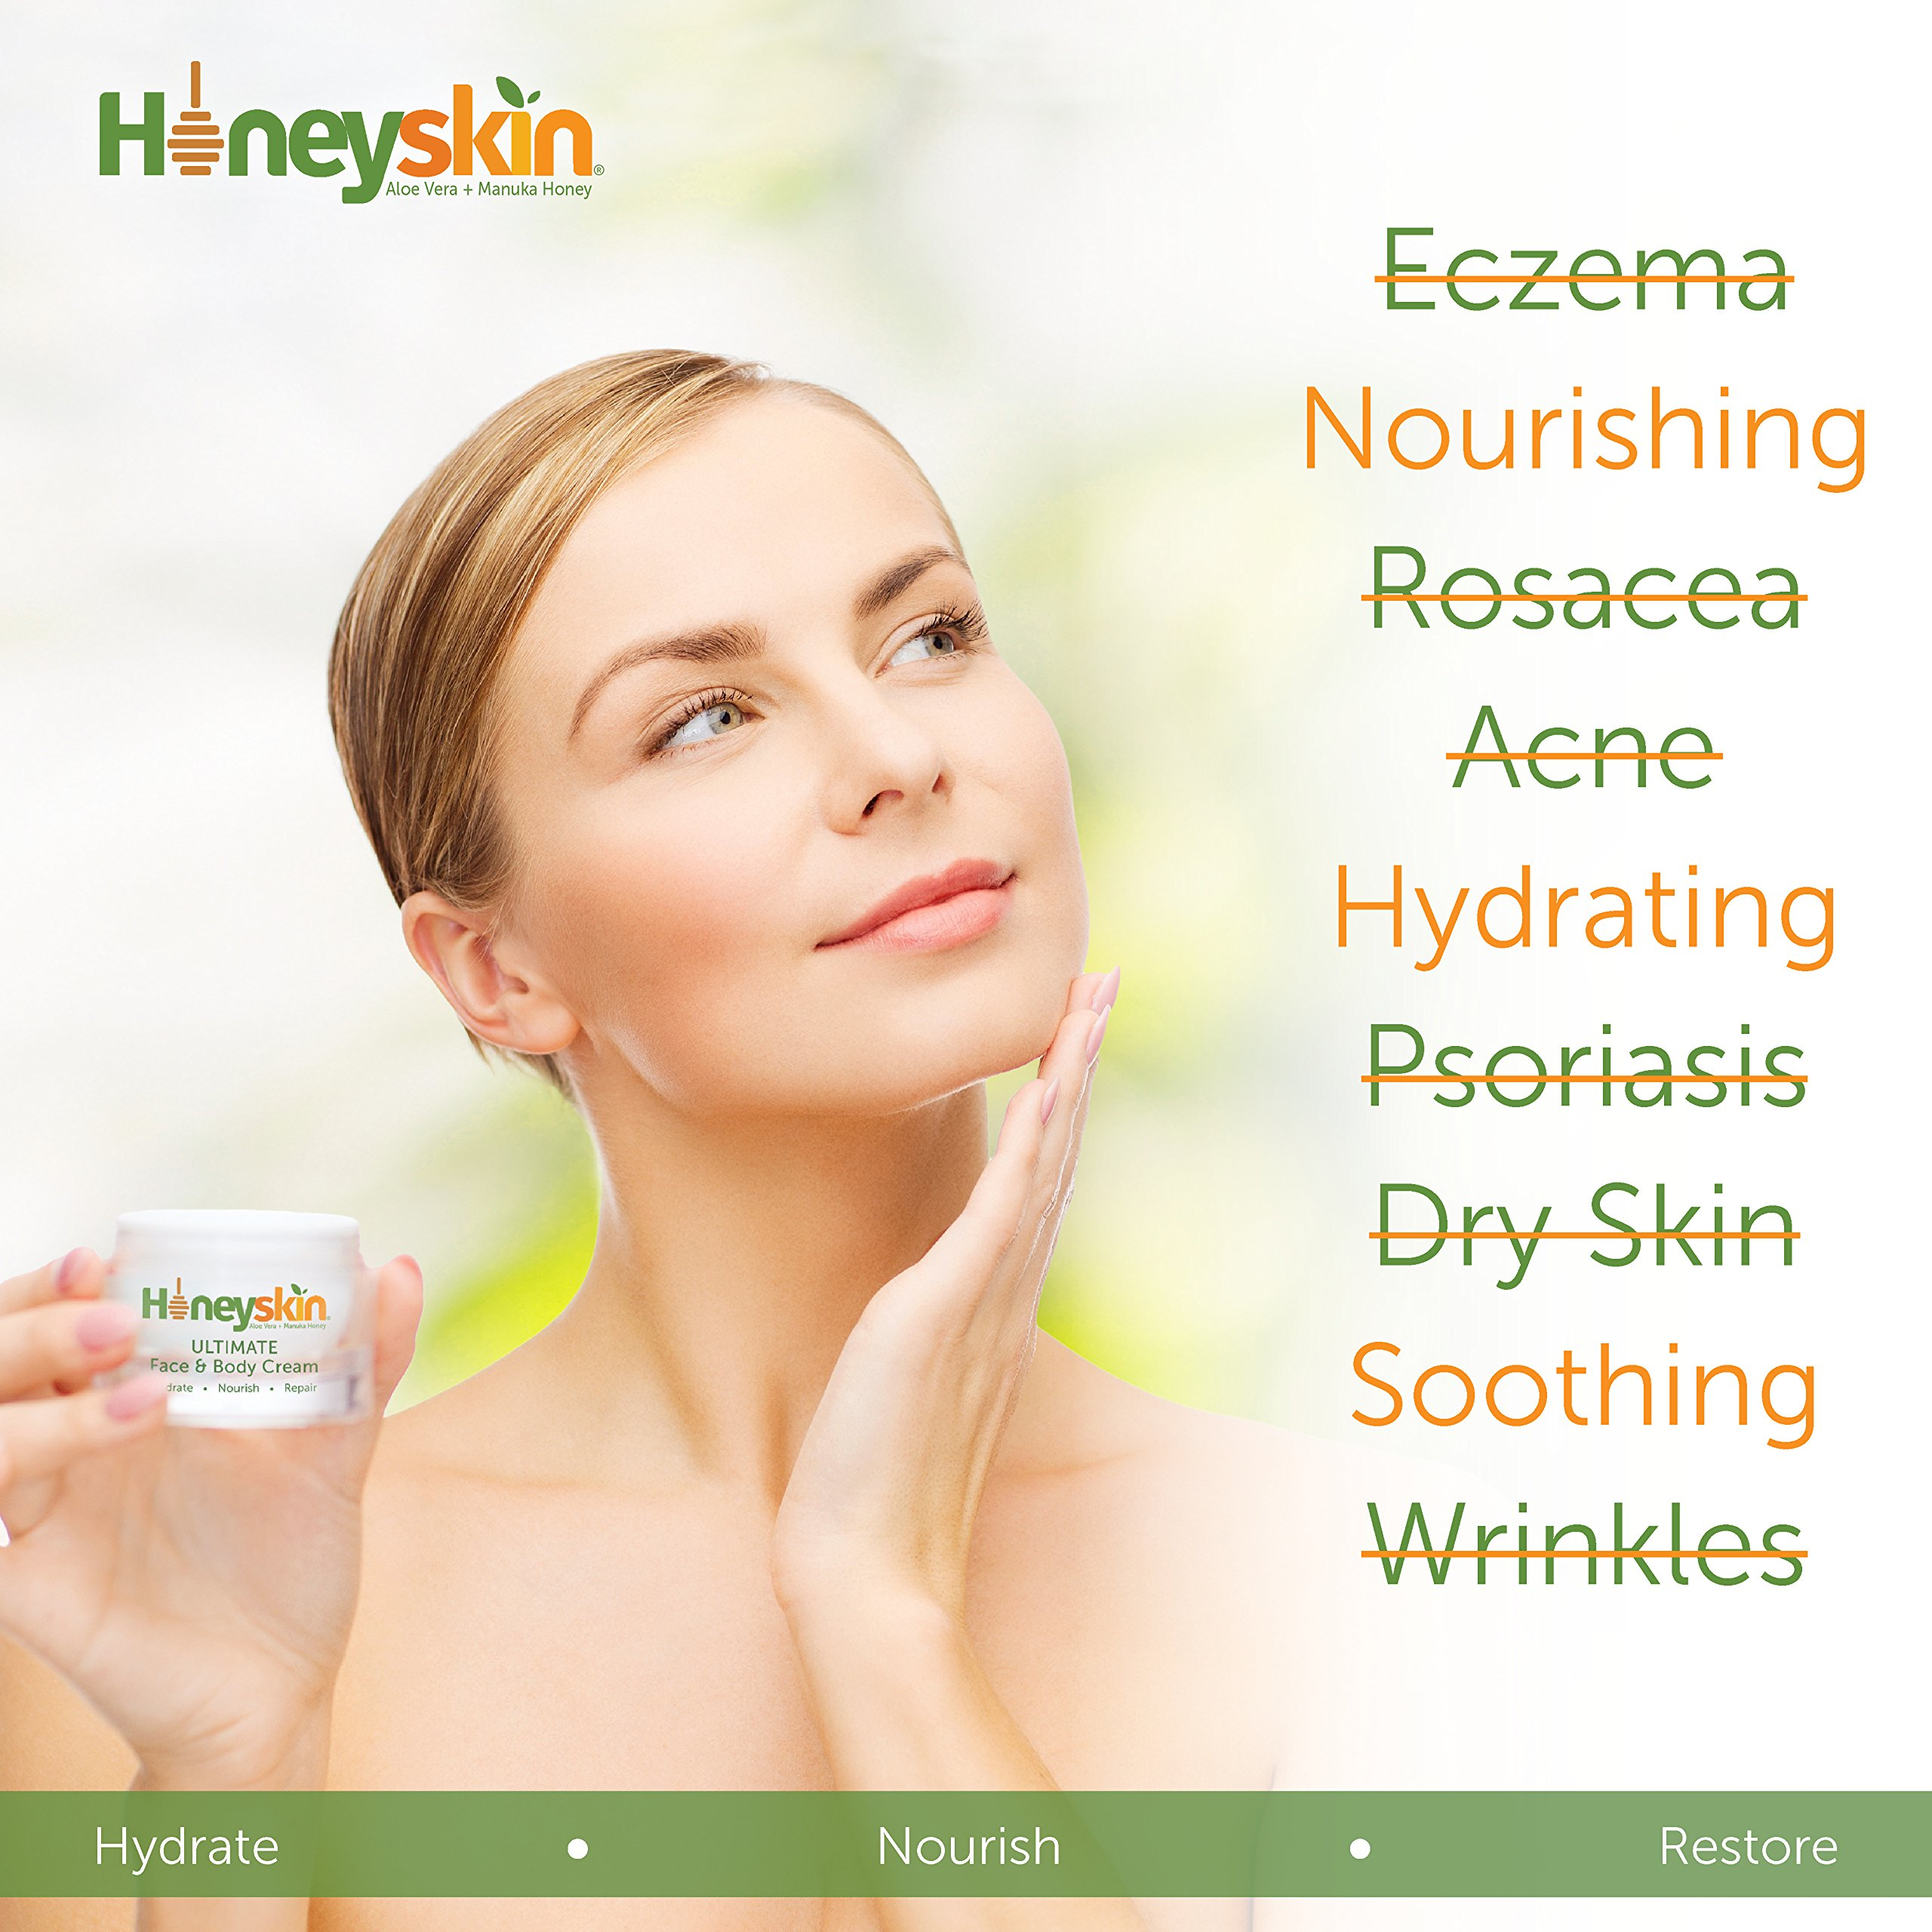 Organic Dry Skin Repair Cream (64 oz) Natural Facial Moisturizer - Rosacea, Eczema, Psoriasis, Rashes, Redness, Raw Superfoods, Manuka Honey, Aloe Vera, Shea Butter by Honeyskin Organics by Honeyskin Organics (Image #8)